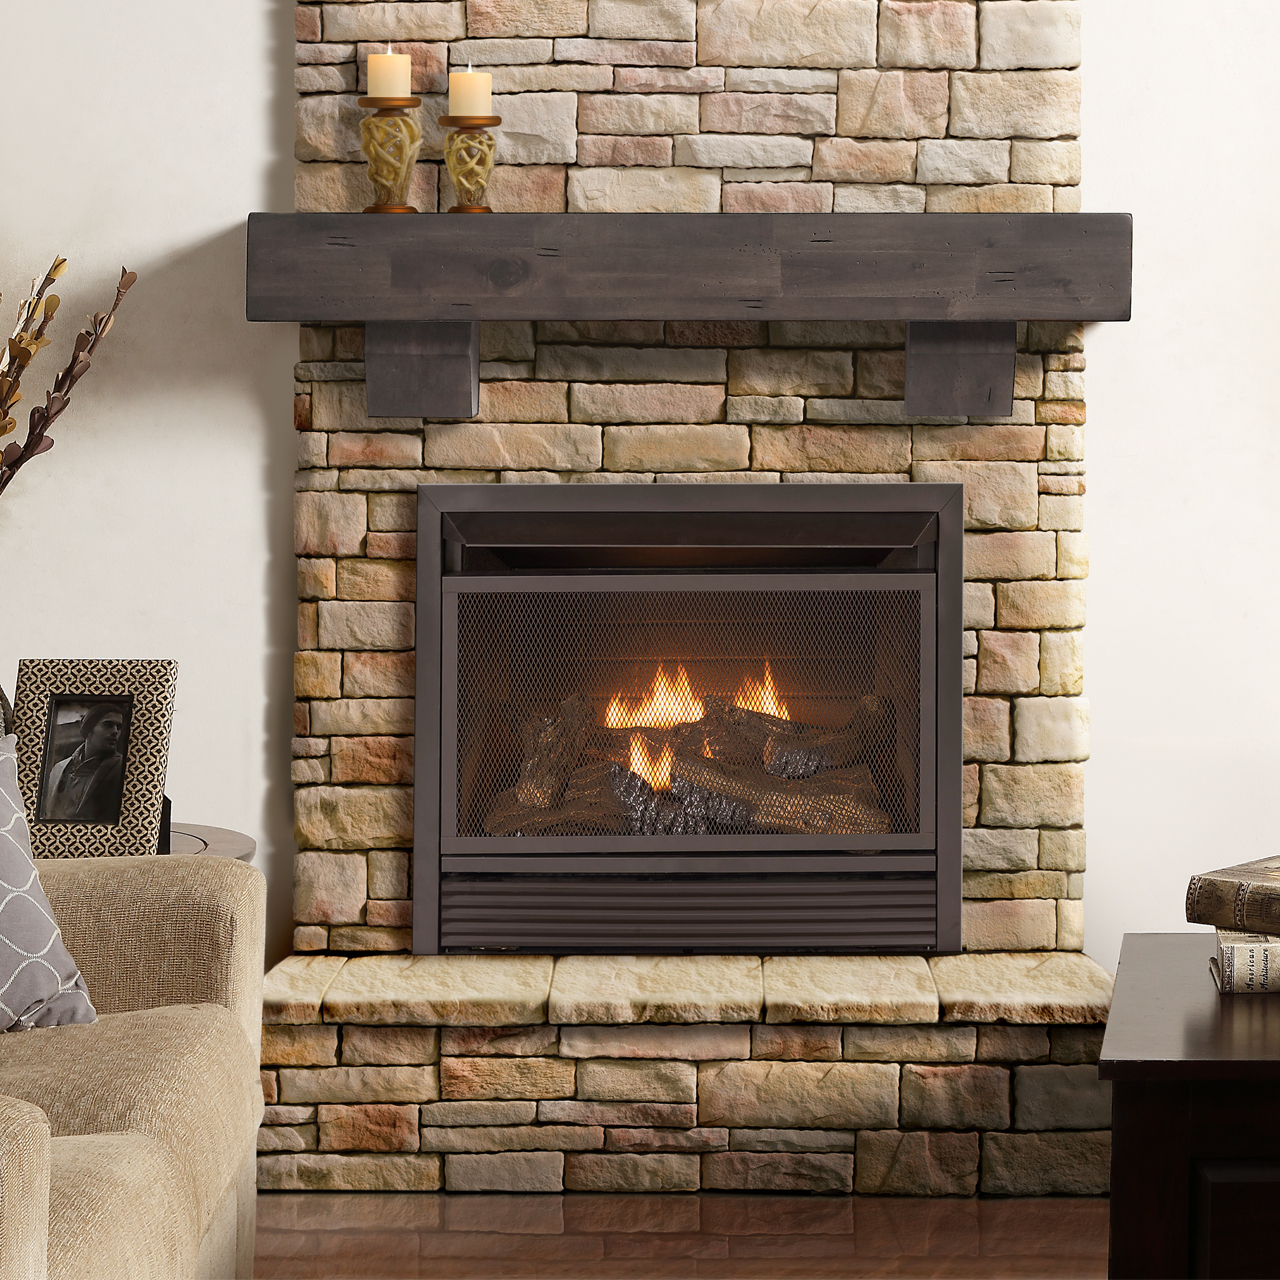 Gas Fireplace Ventless Inserts 26k Btu Dual Fuel Vent